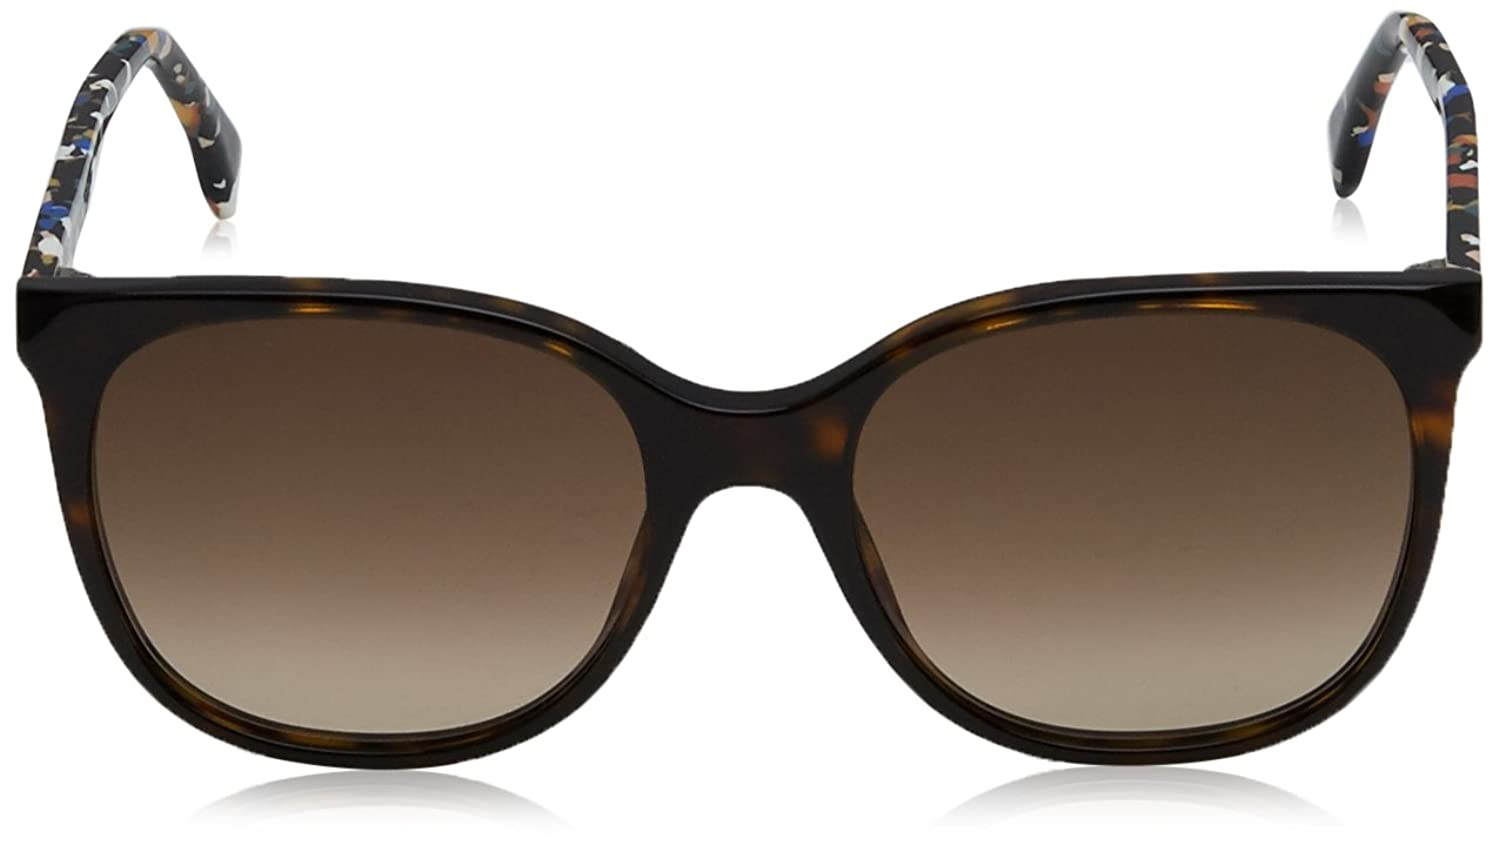 Fendi Damen Sonnenbrille FF 0172/S CC Tto, Braun (Dkhvn Multic/Brown Sf), 53